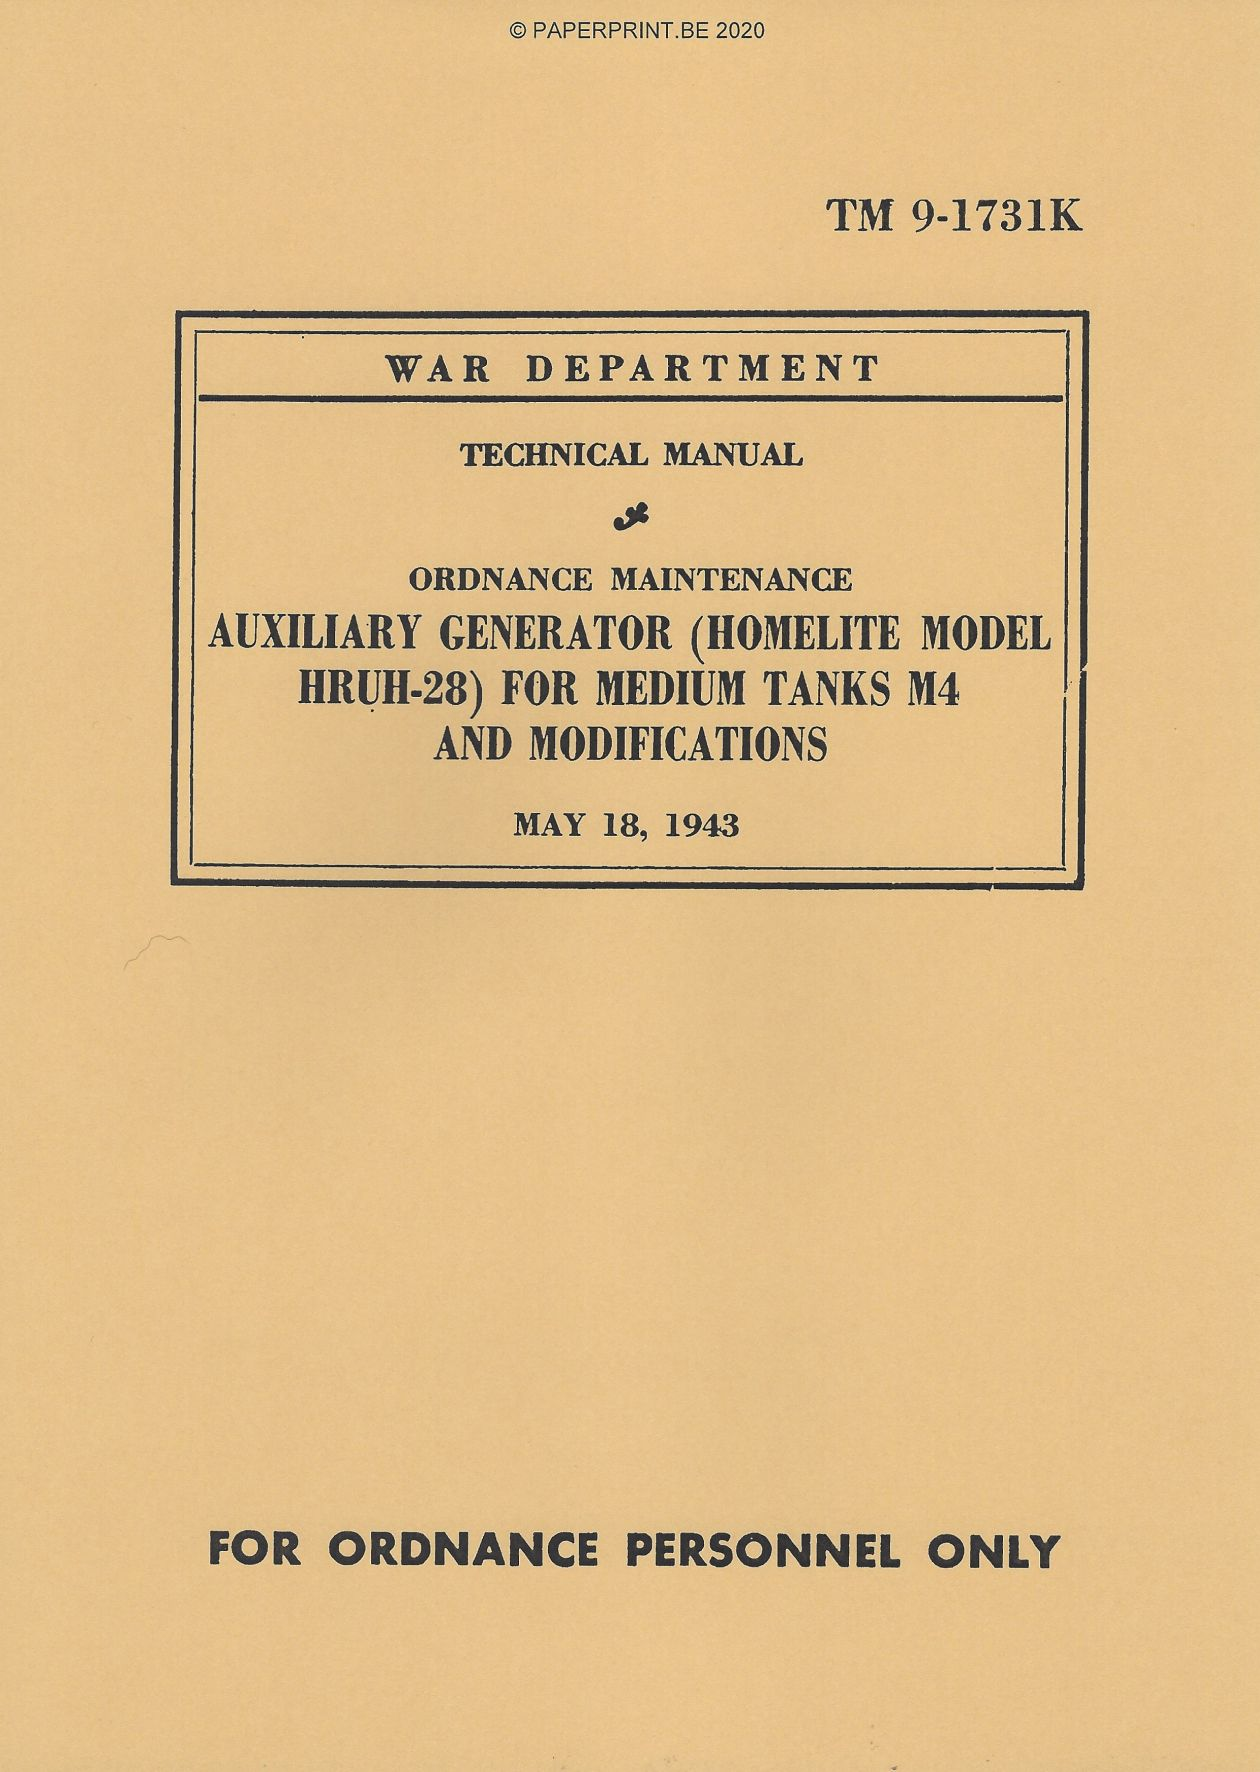 TM 9-1731K US AUXILIARY GENERATOR (HOMELITE MODEL HRUH-28) FOR MEDIUM TANKS M4 AND MODIFICATIONS